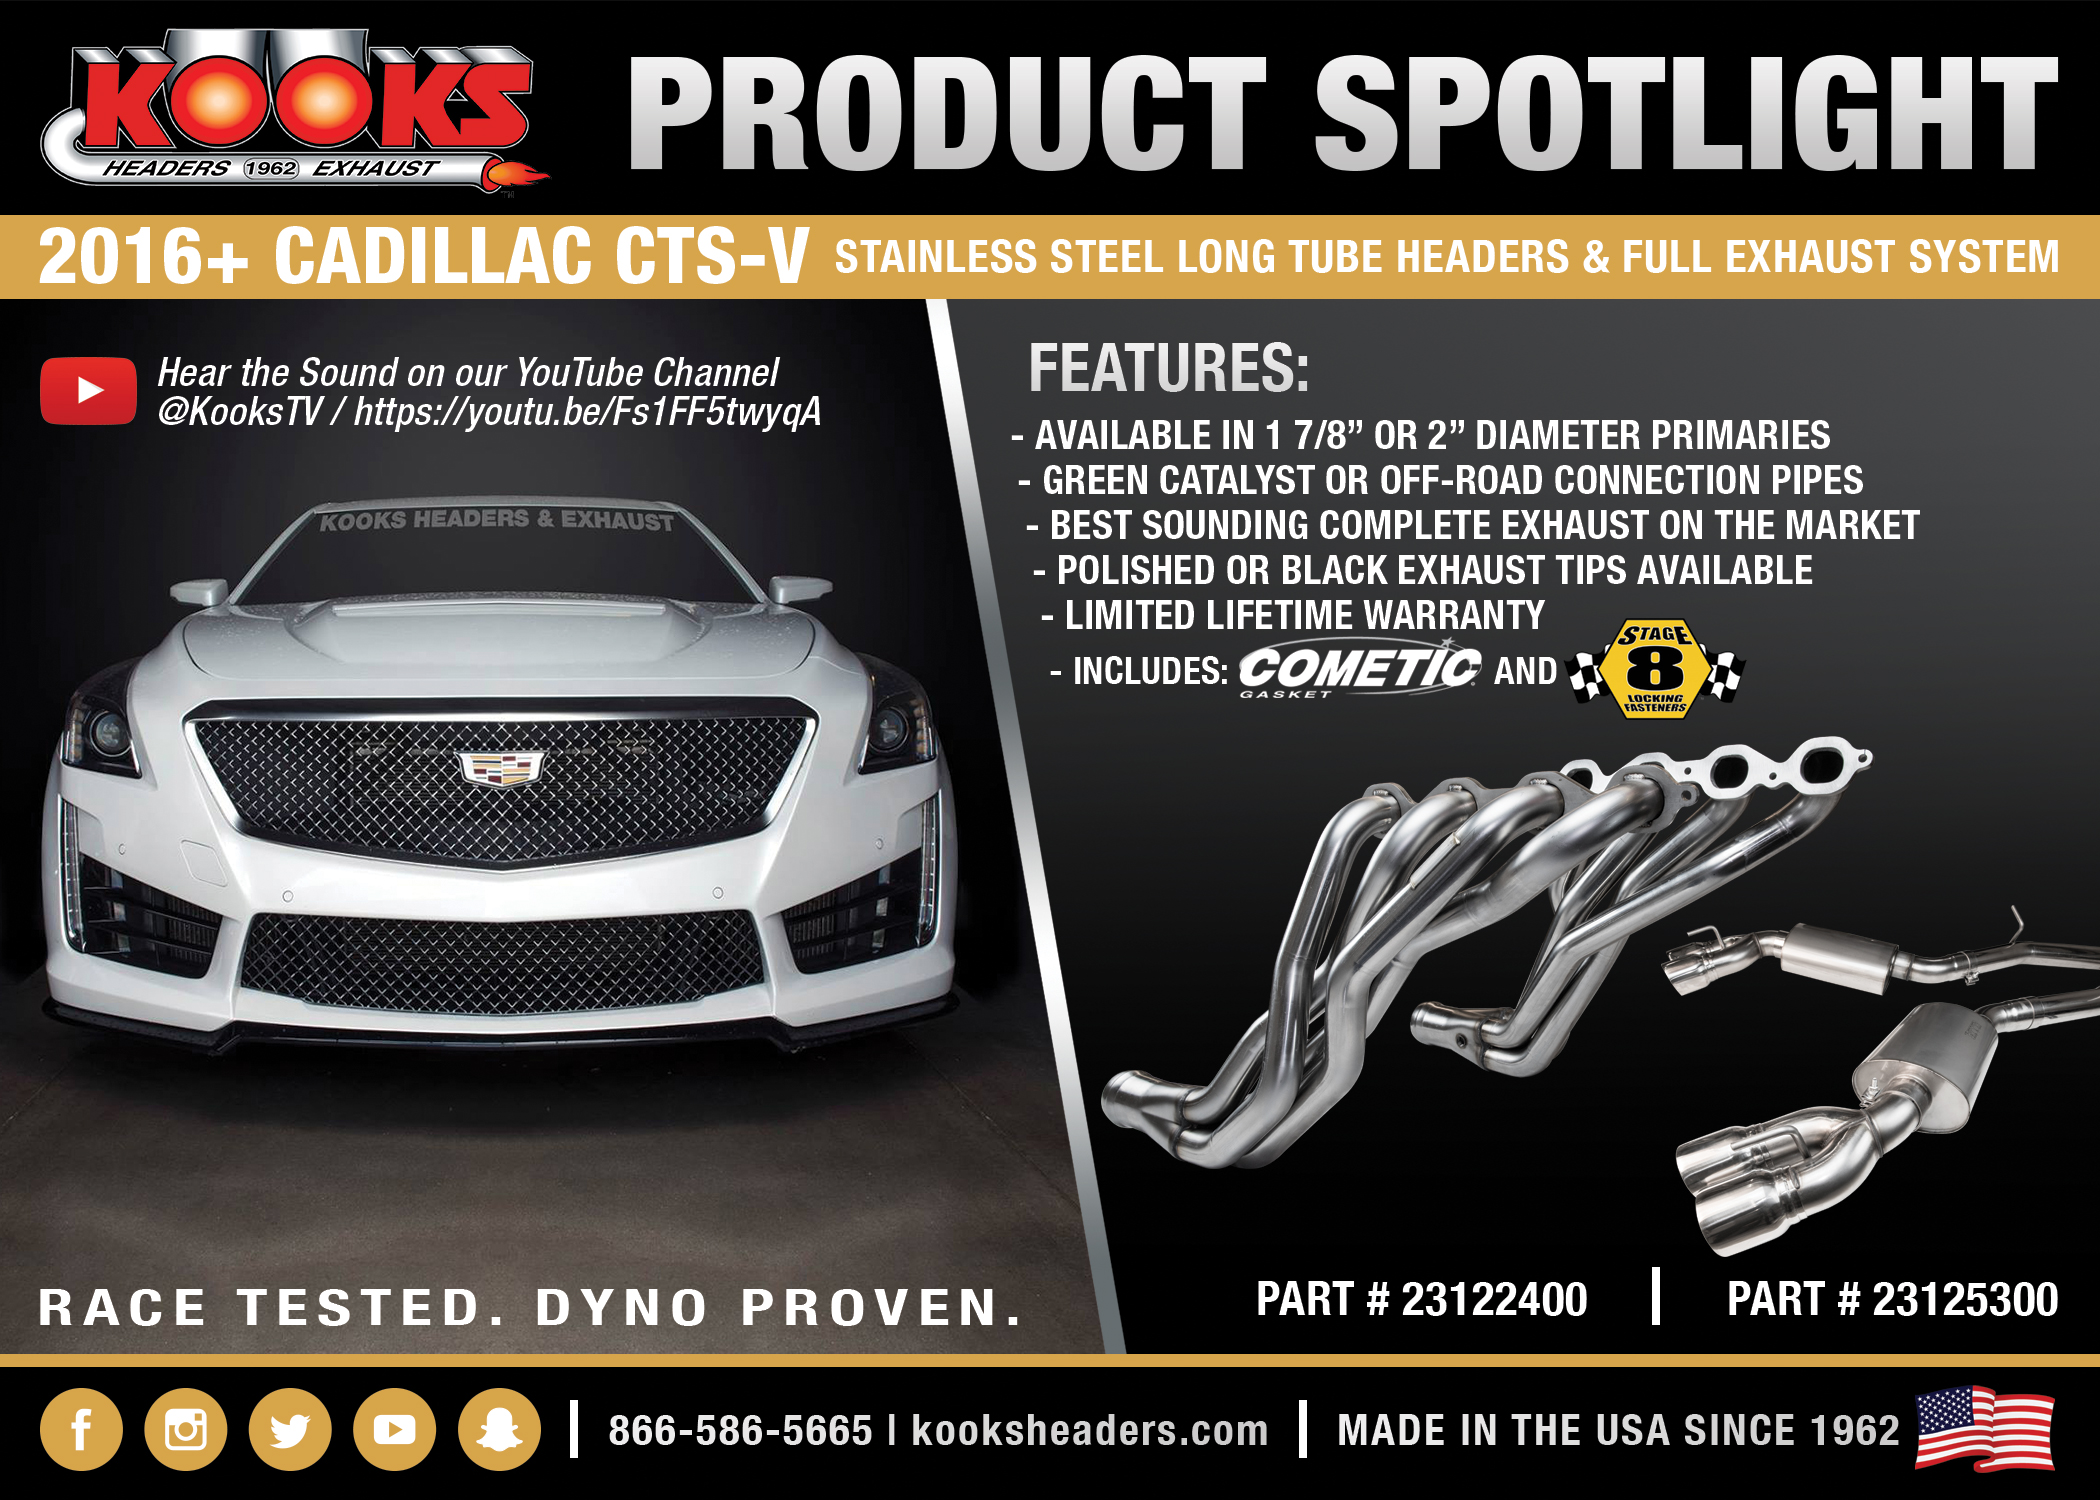 Kooks Cadillac CTS-V Long Tube Headers & Exhaust System